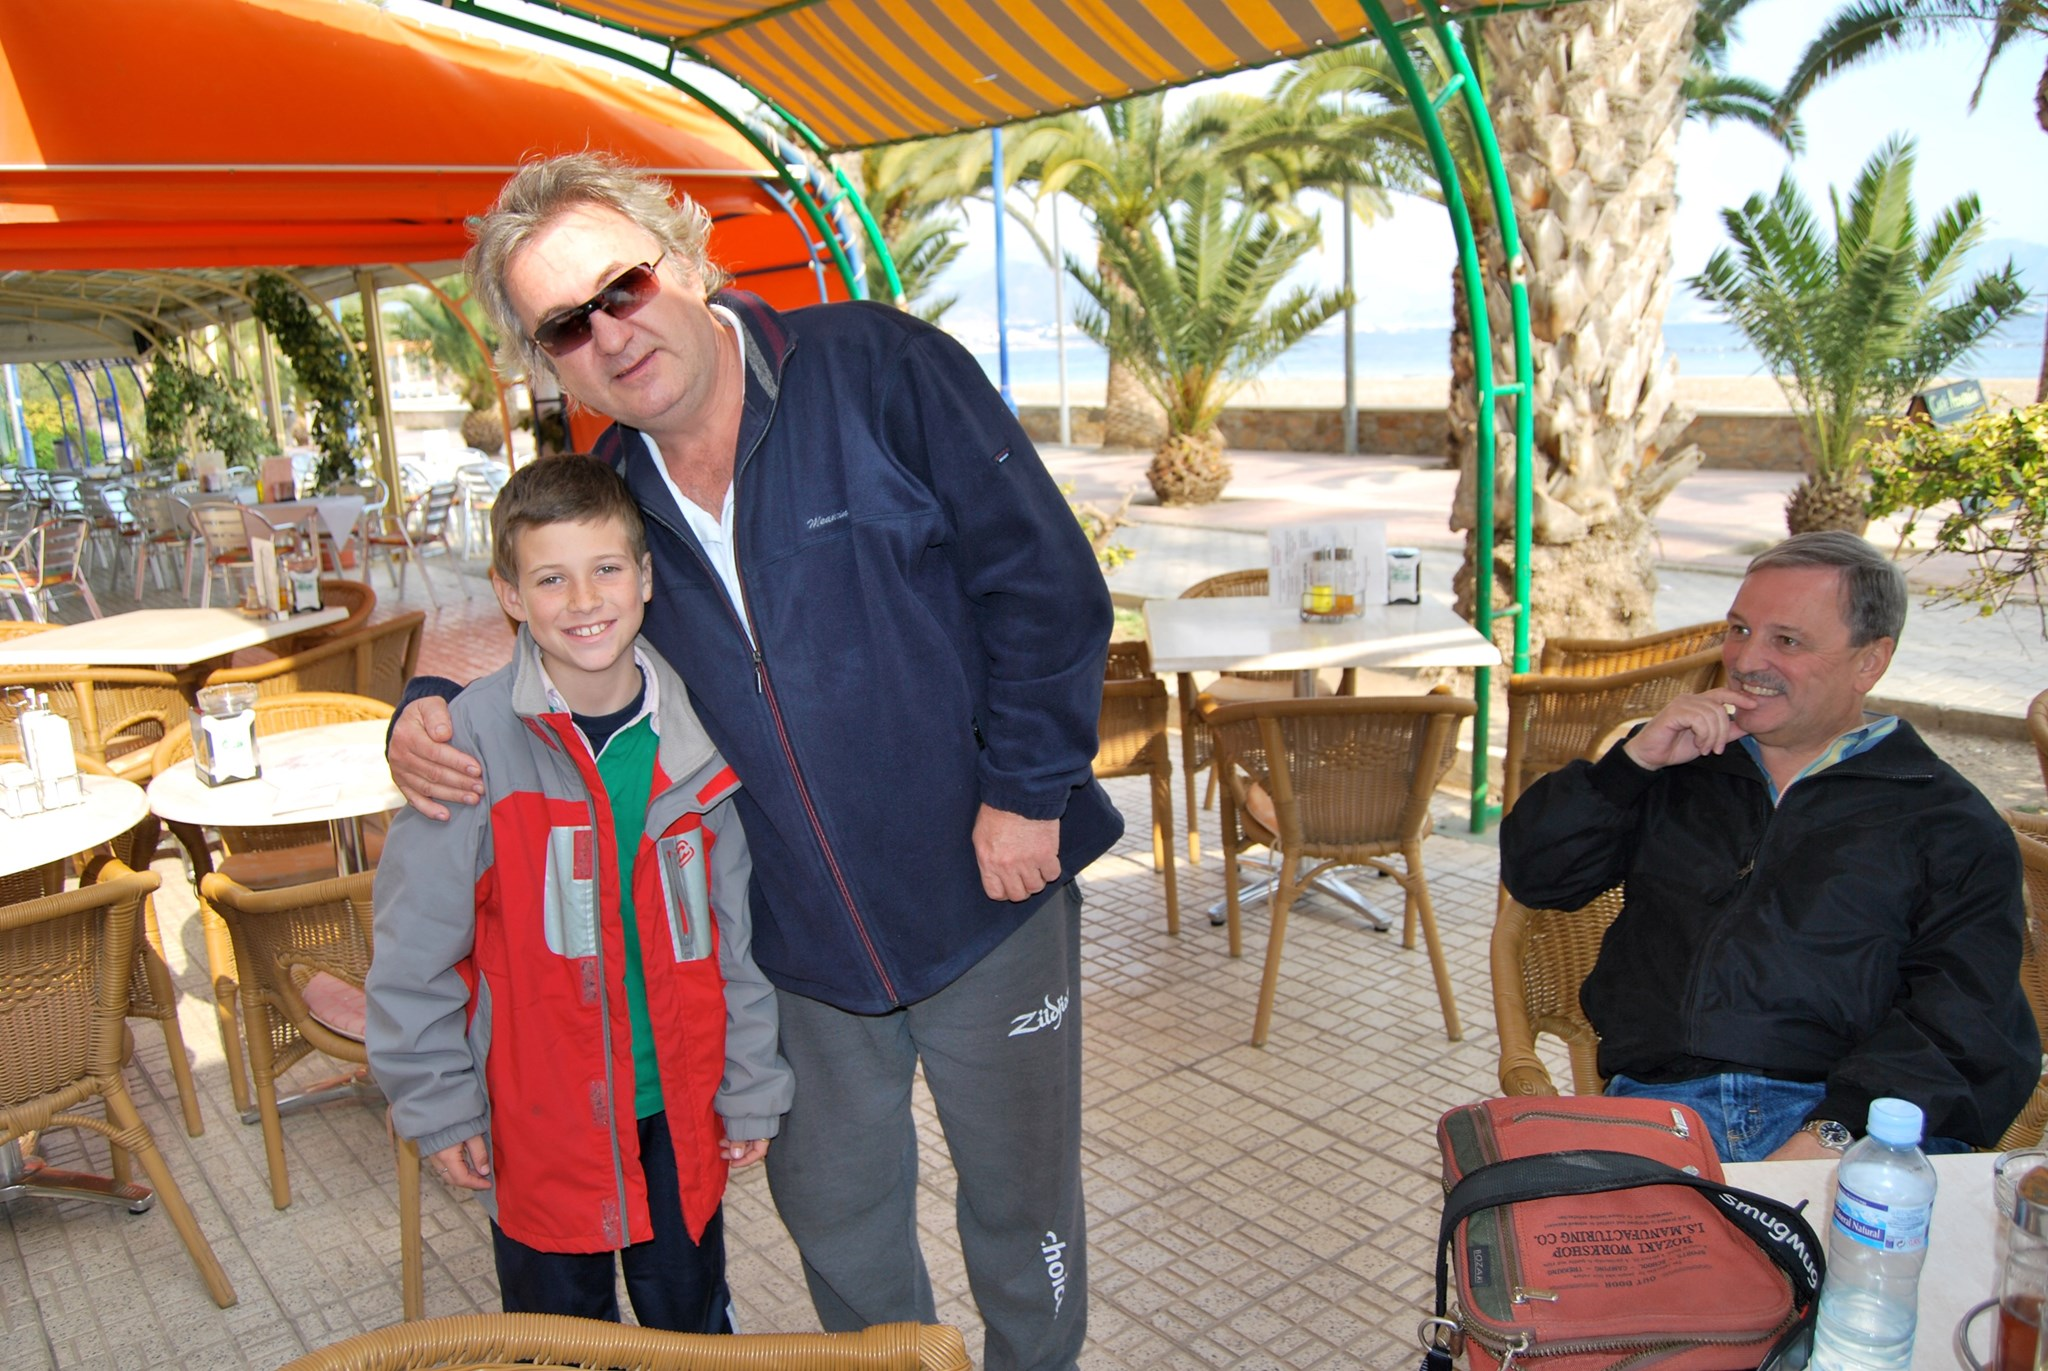 Brandon Nicol with Robbie, March 2nd 2009